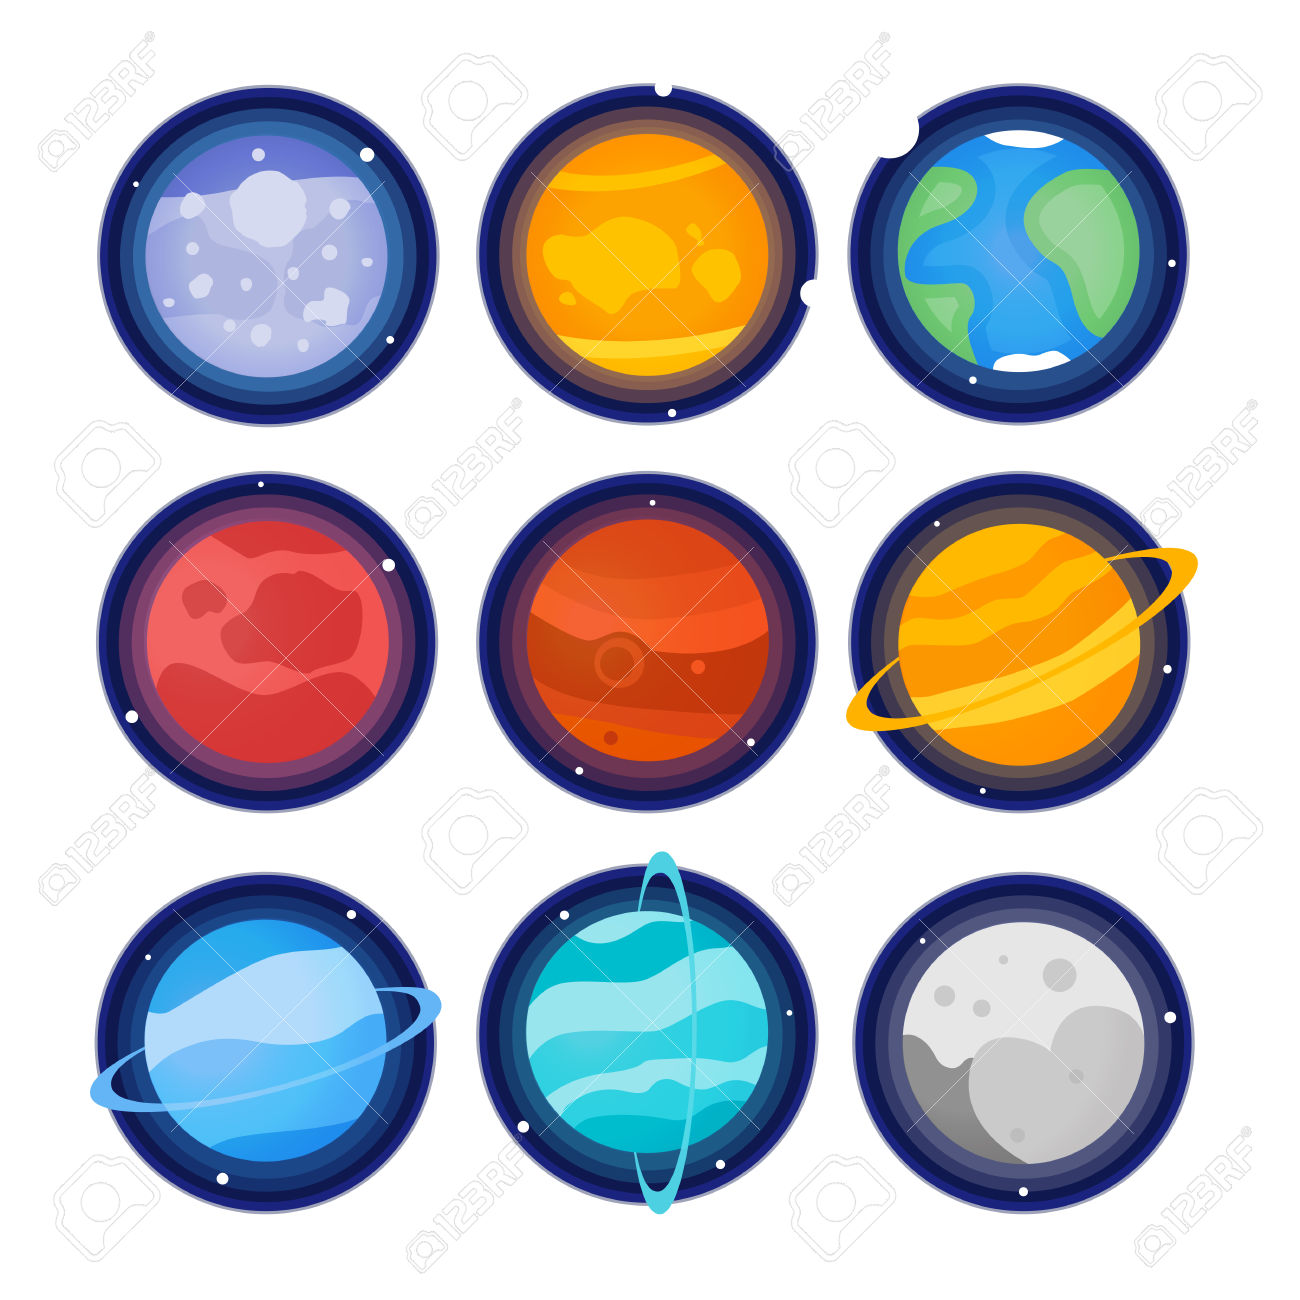 Planet clipart individual. The planets free download